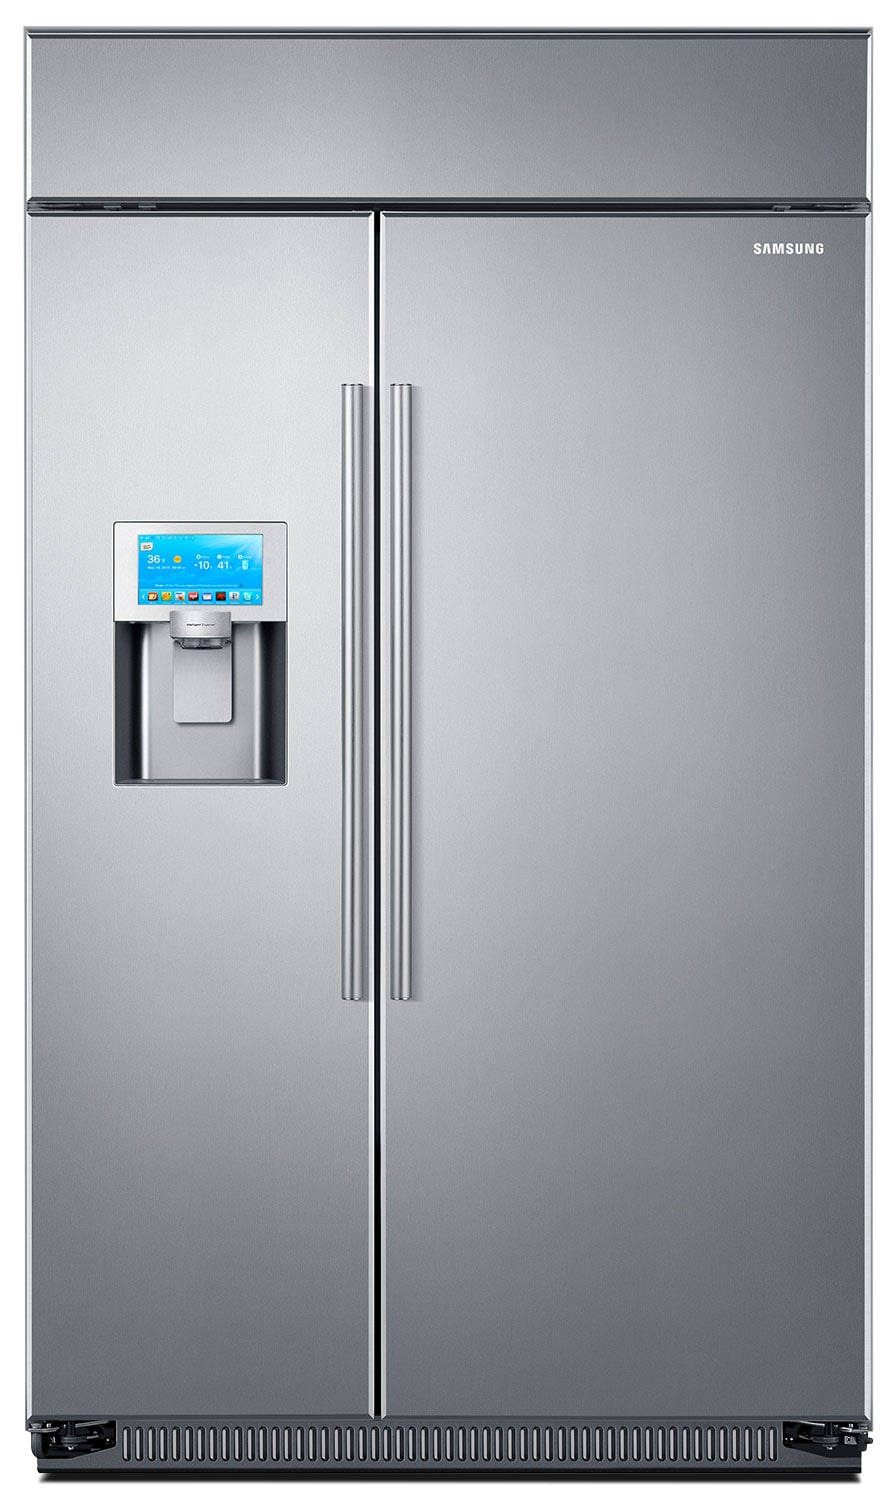 Refrigerators and Freezers - Samsung Stainless Steel Built-In Side-by-Side Refrigerator (26.5 Cu. Ft.) - RS27FDBTNSR